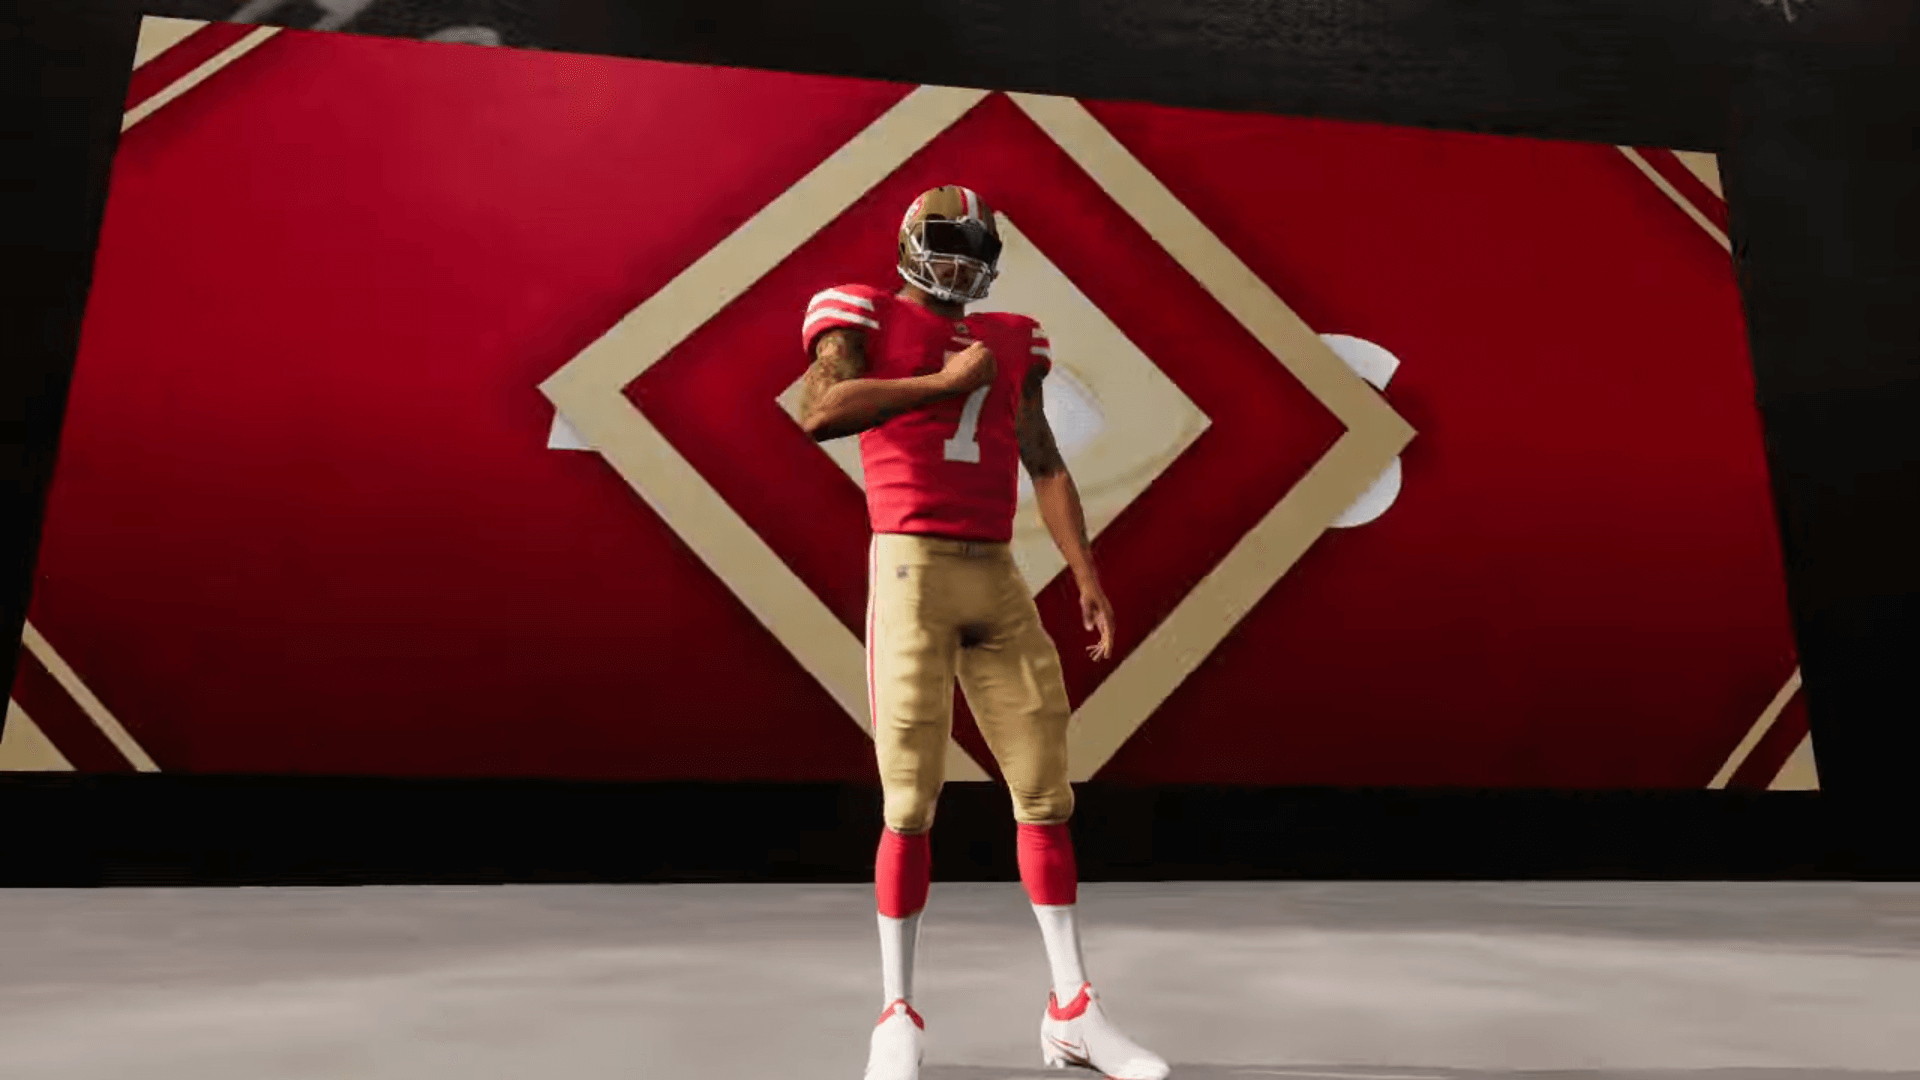 Madden 21 Reintroduces Colin Kaepernick to Free Agency Roster